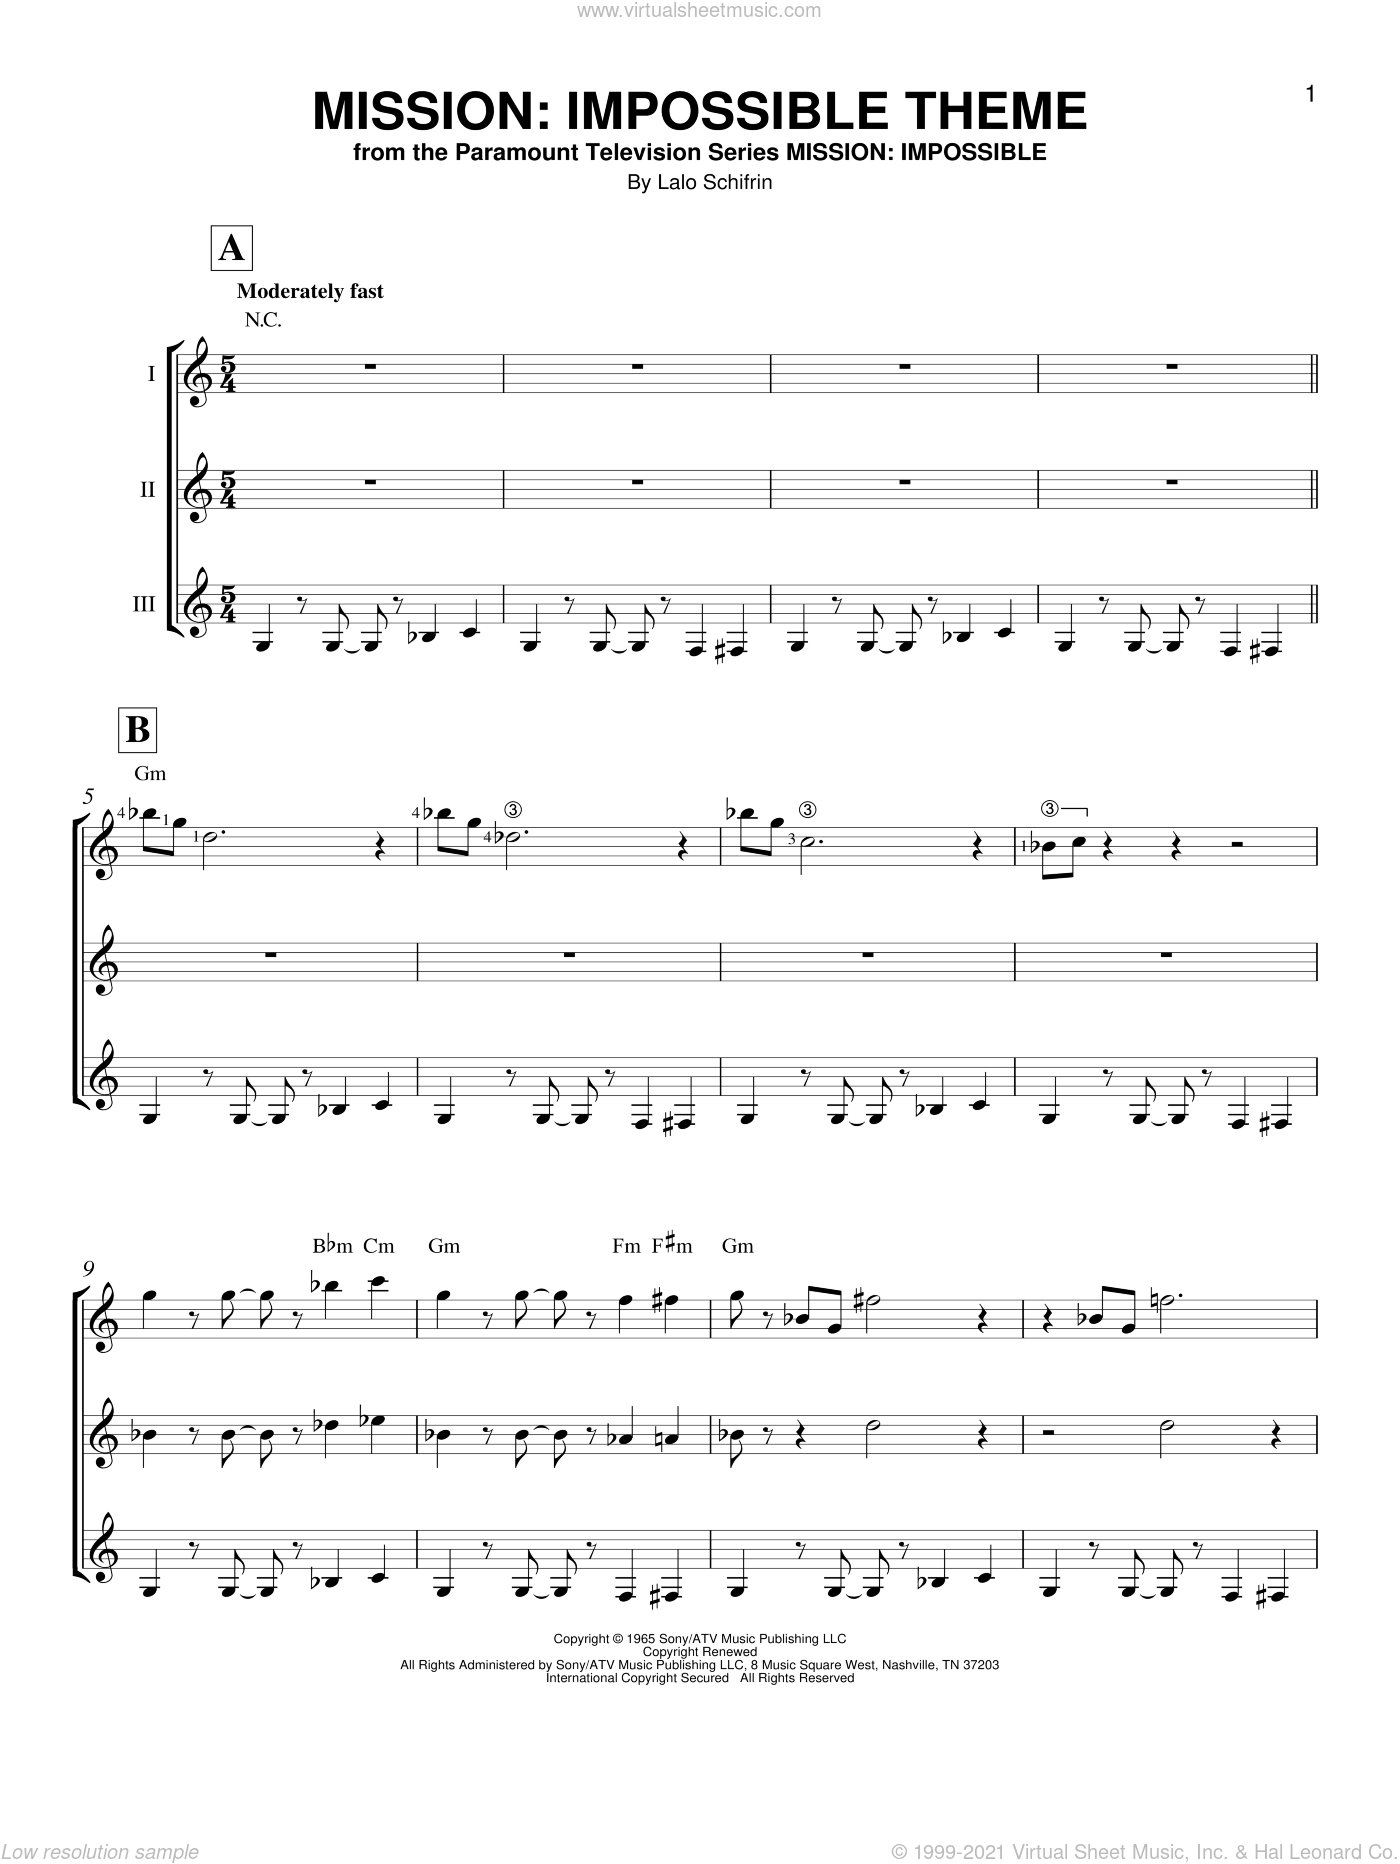 Mission: Impossible Theme sheet music for guitar ensemble by Lalo Schifrin and Adam Clayton and Larry Mullen, intermediate skill level